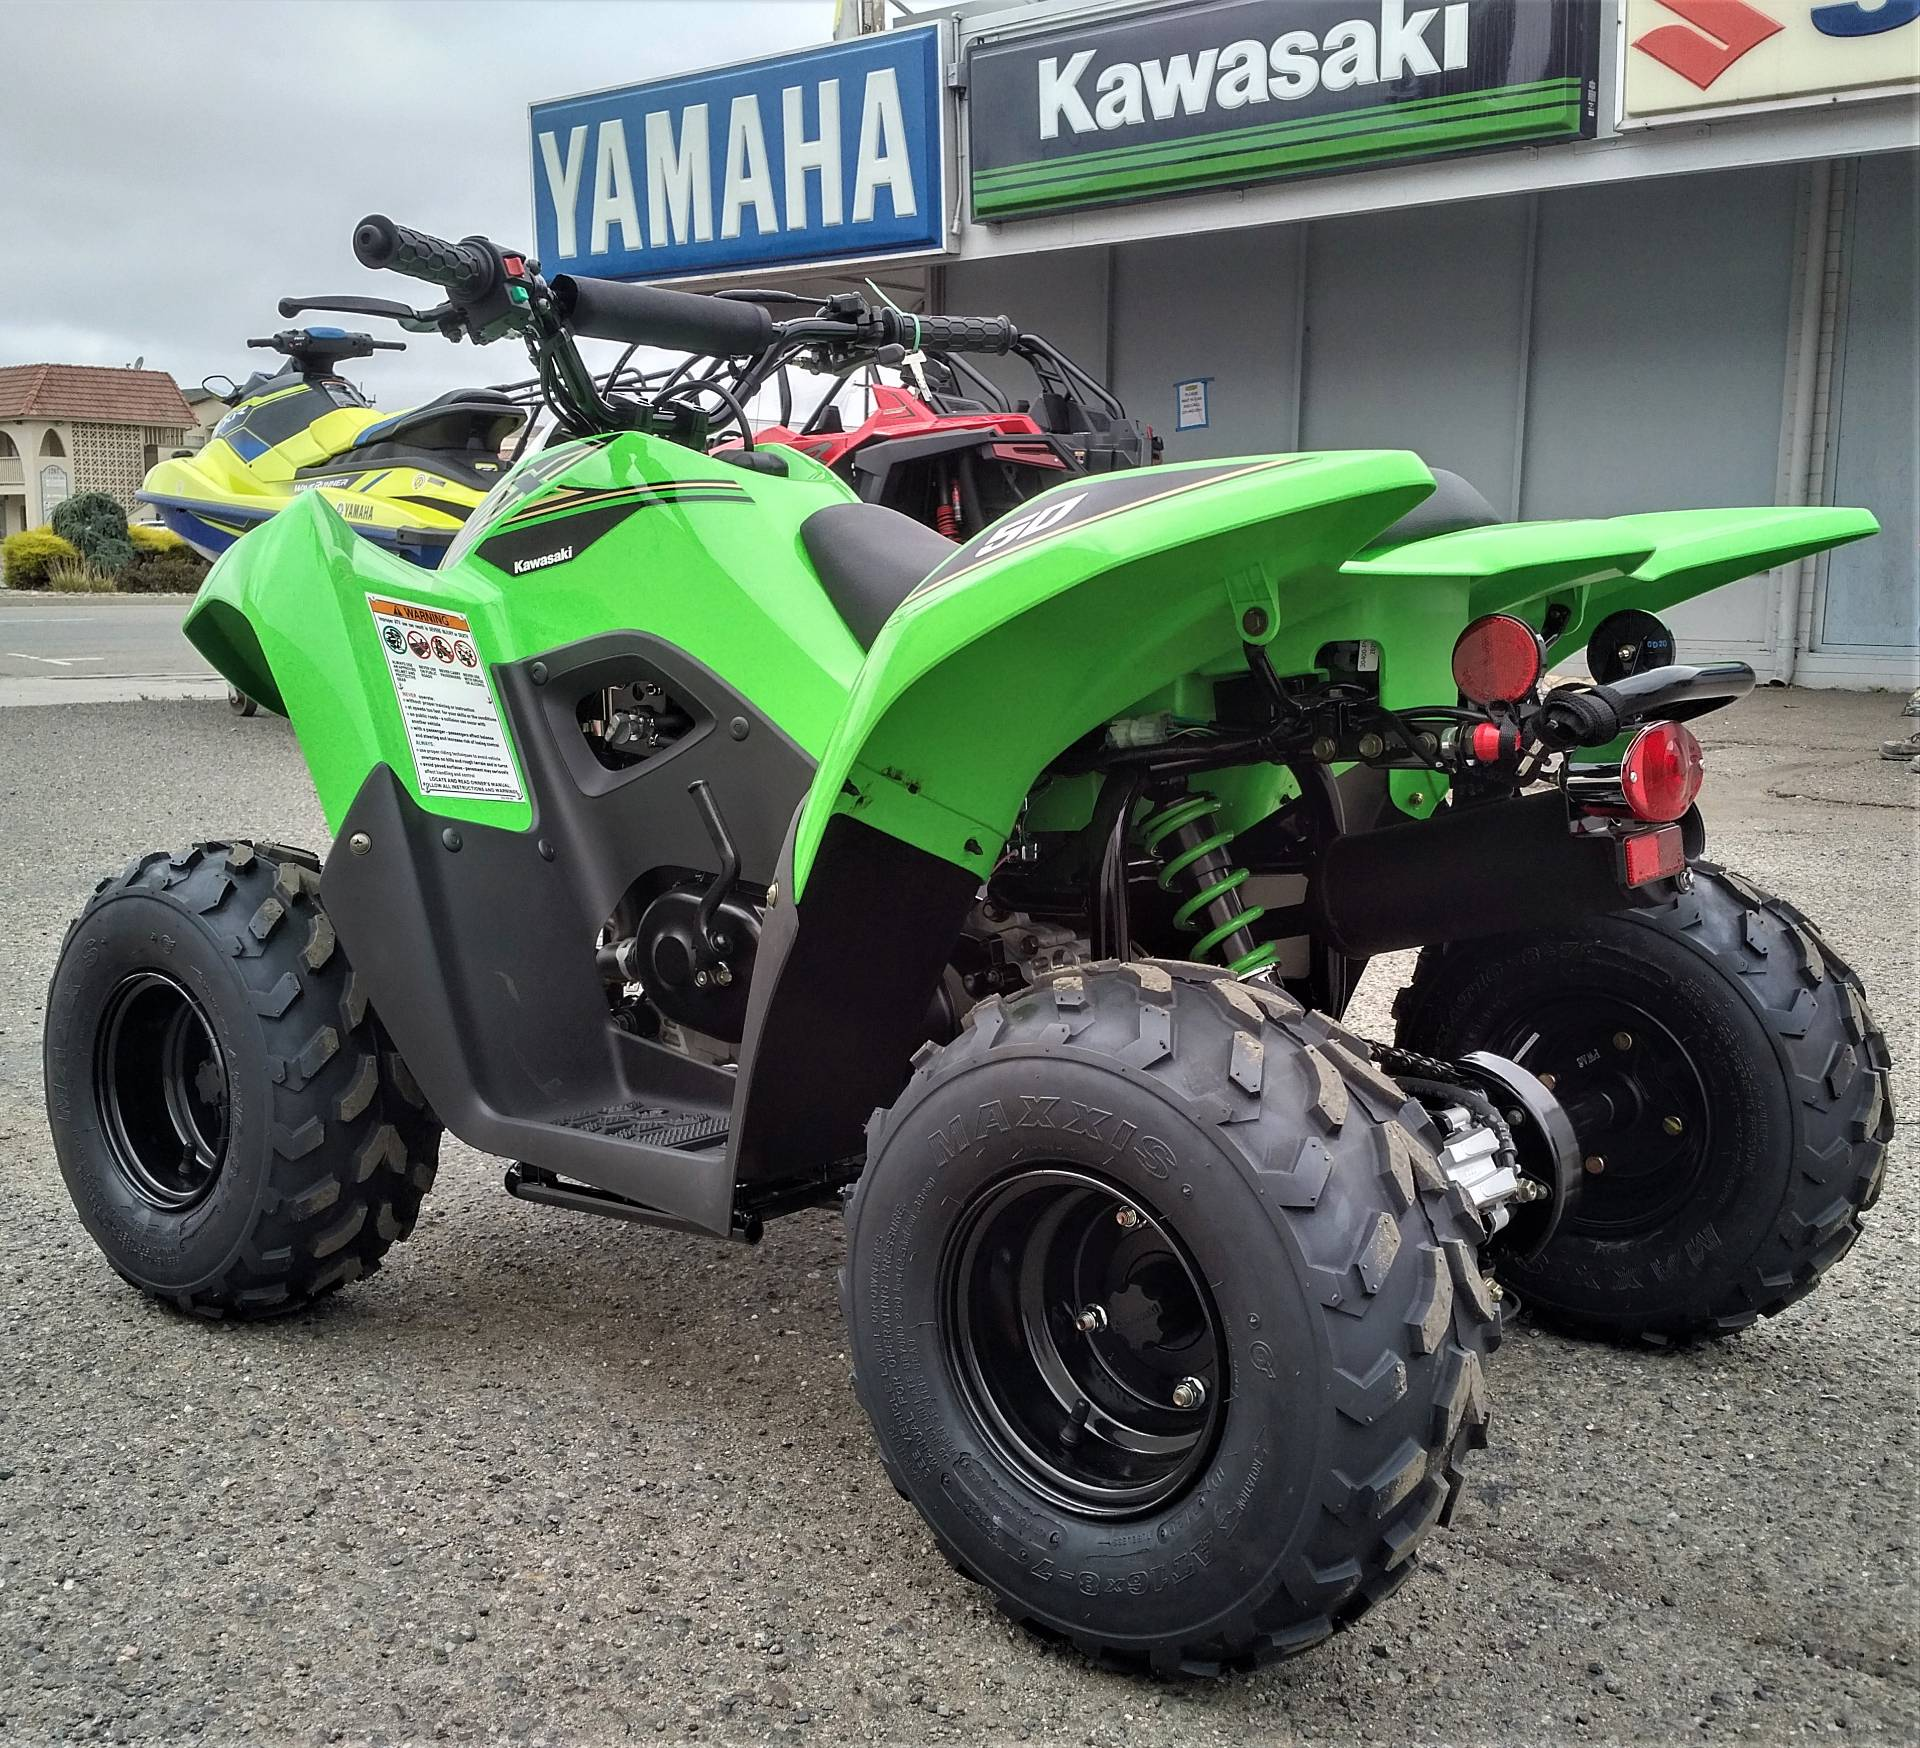 2021 Kawasaki KFX 50 in Salinas, California - Photo 7